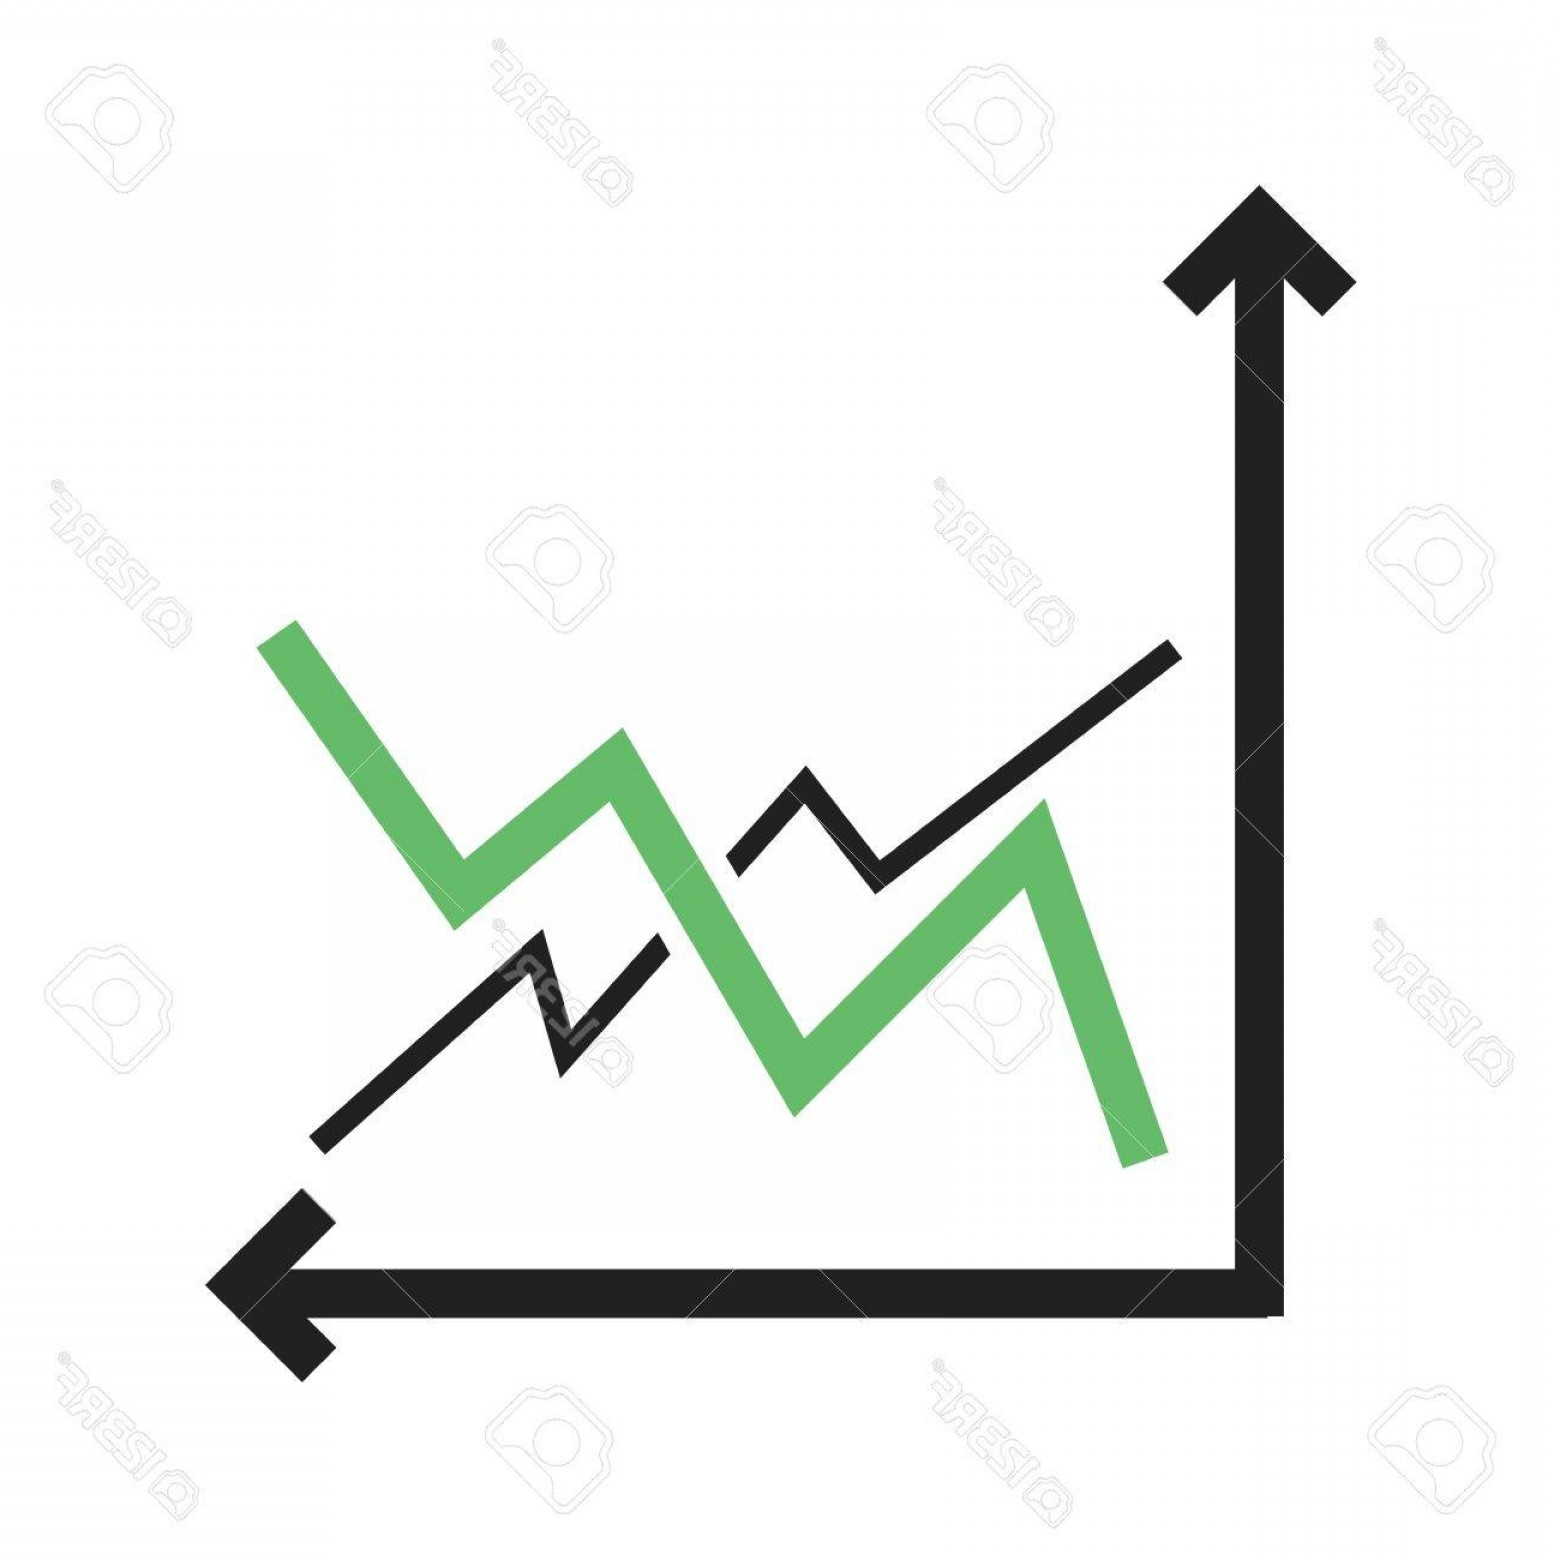 Frequency Icon Vector: Photostock Vector Frequency Bar Graph Icon Vector Image Can Also Be Used For Business Management Suitable For Use On W